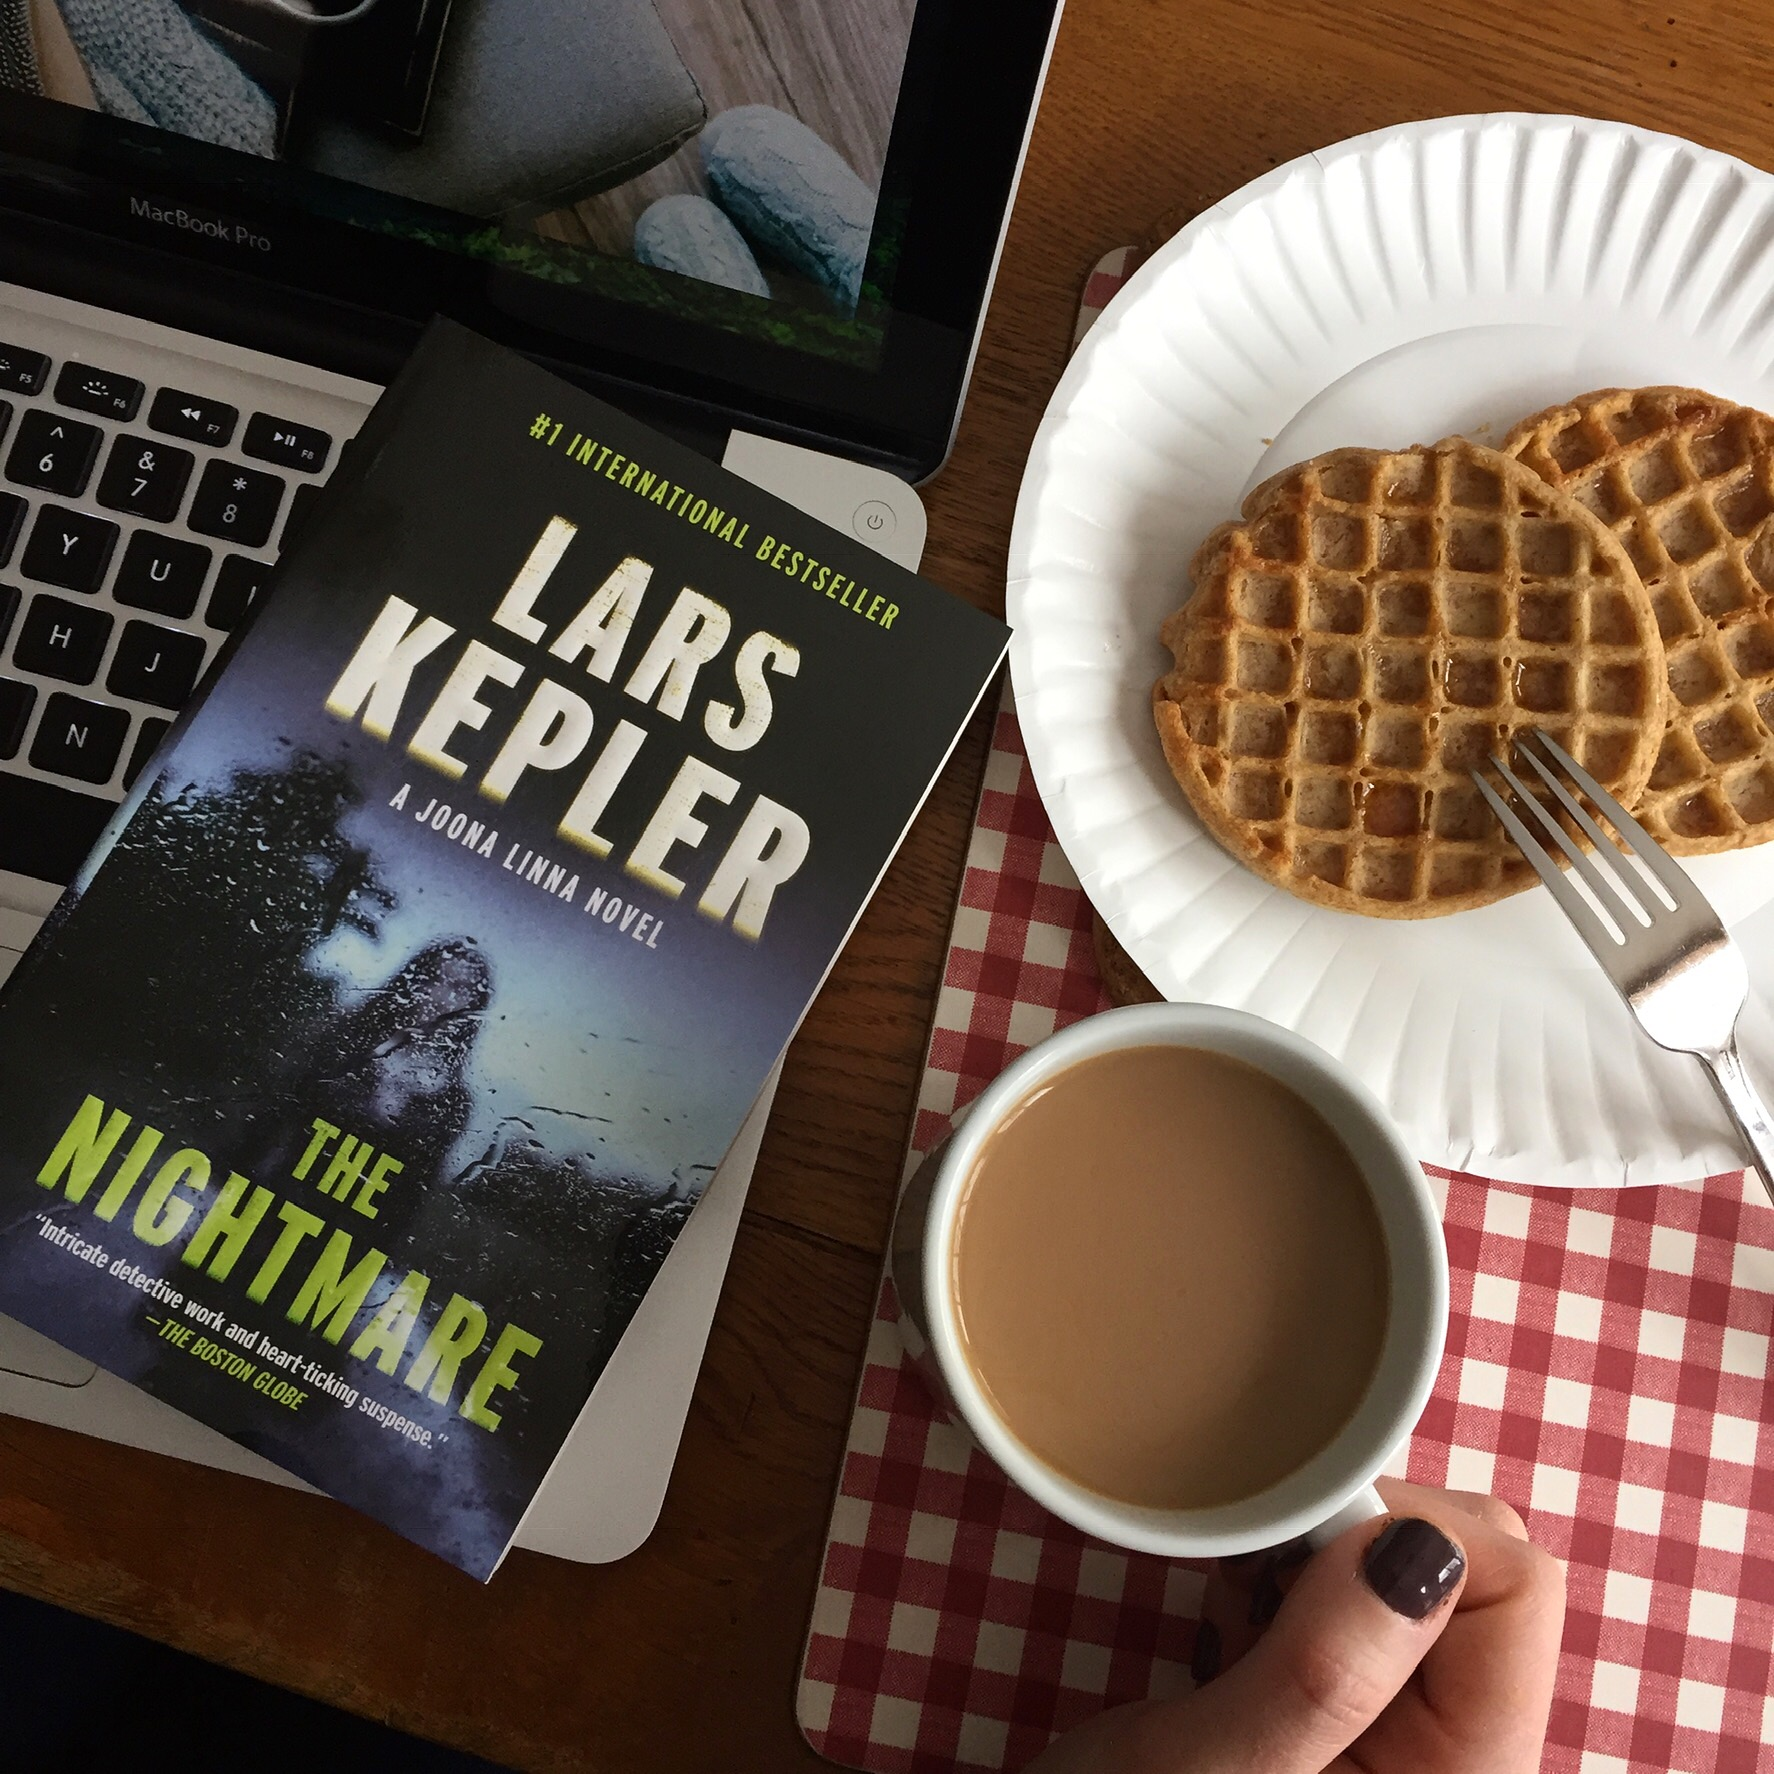 Book Review for THE NIGHTMARE by Lars Kepler